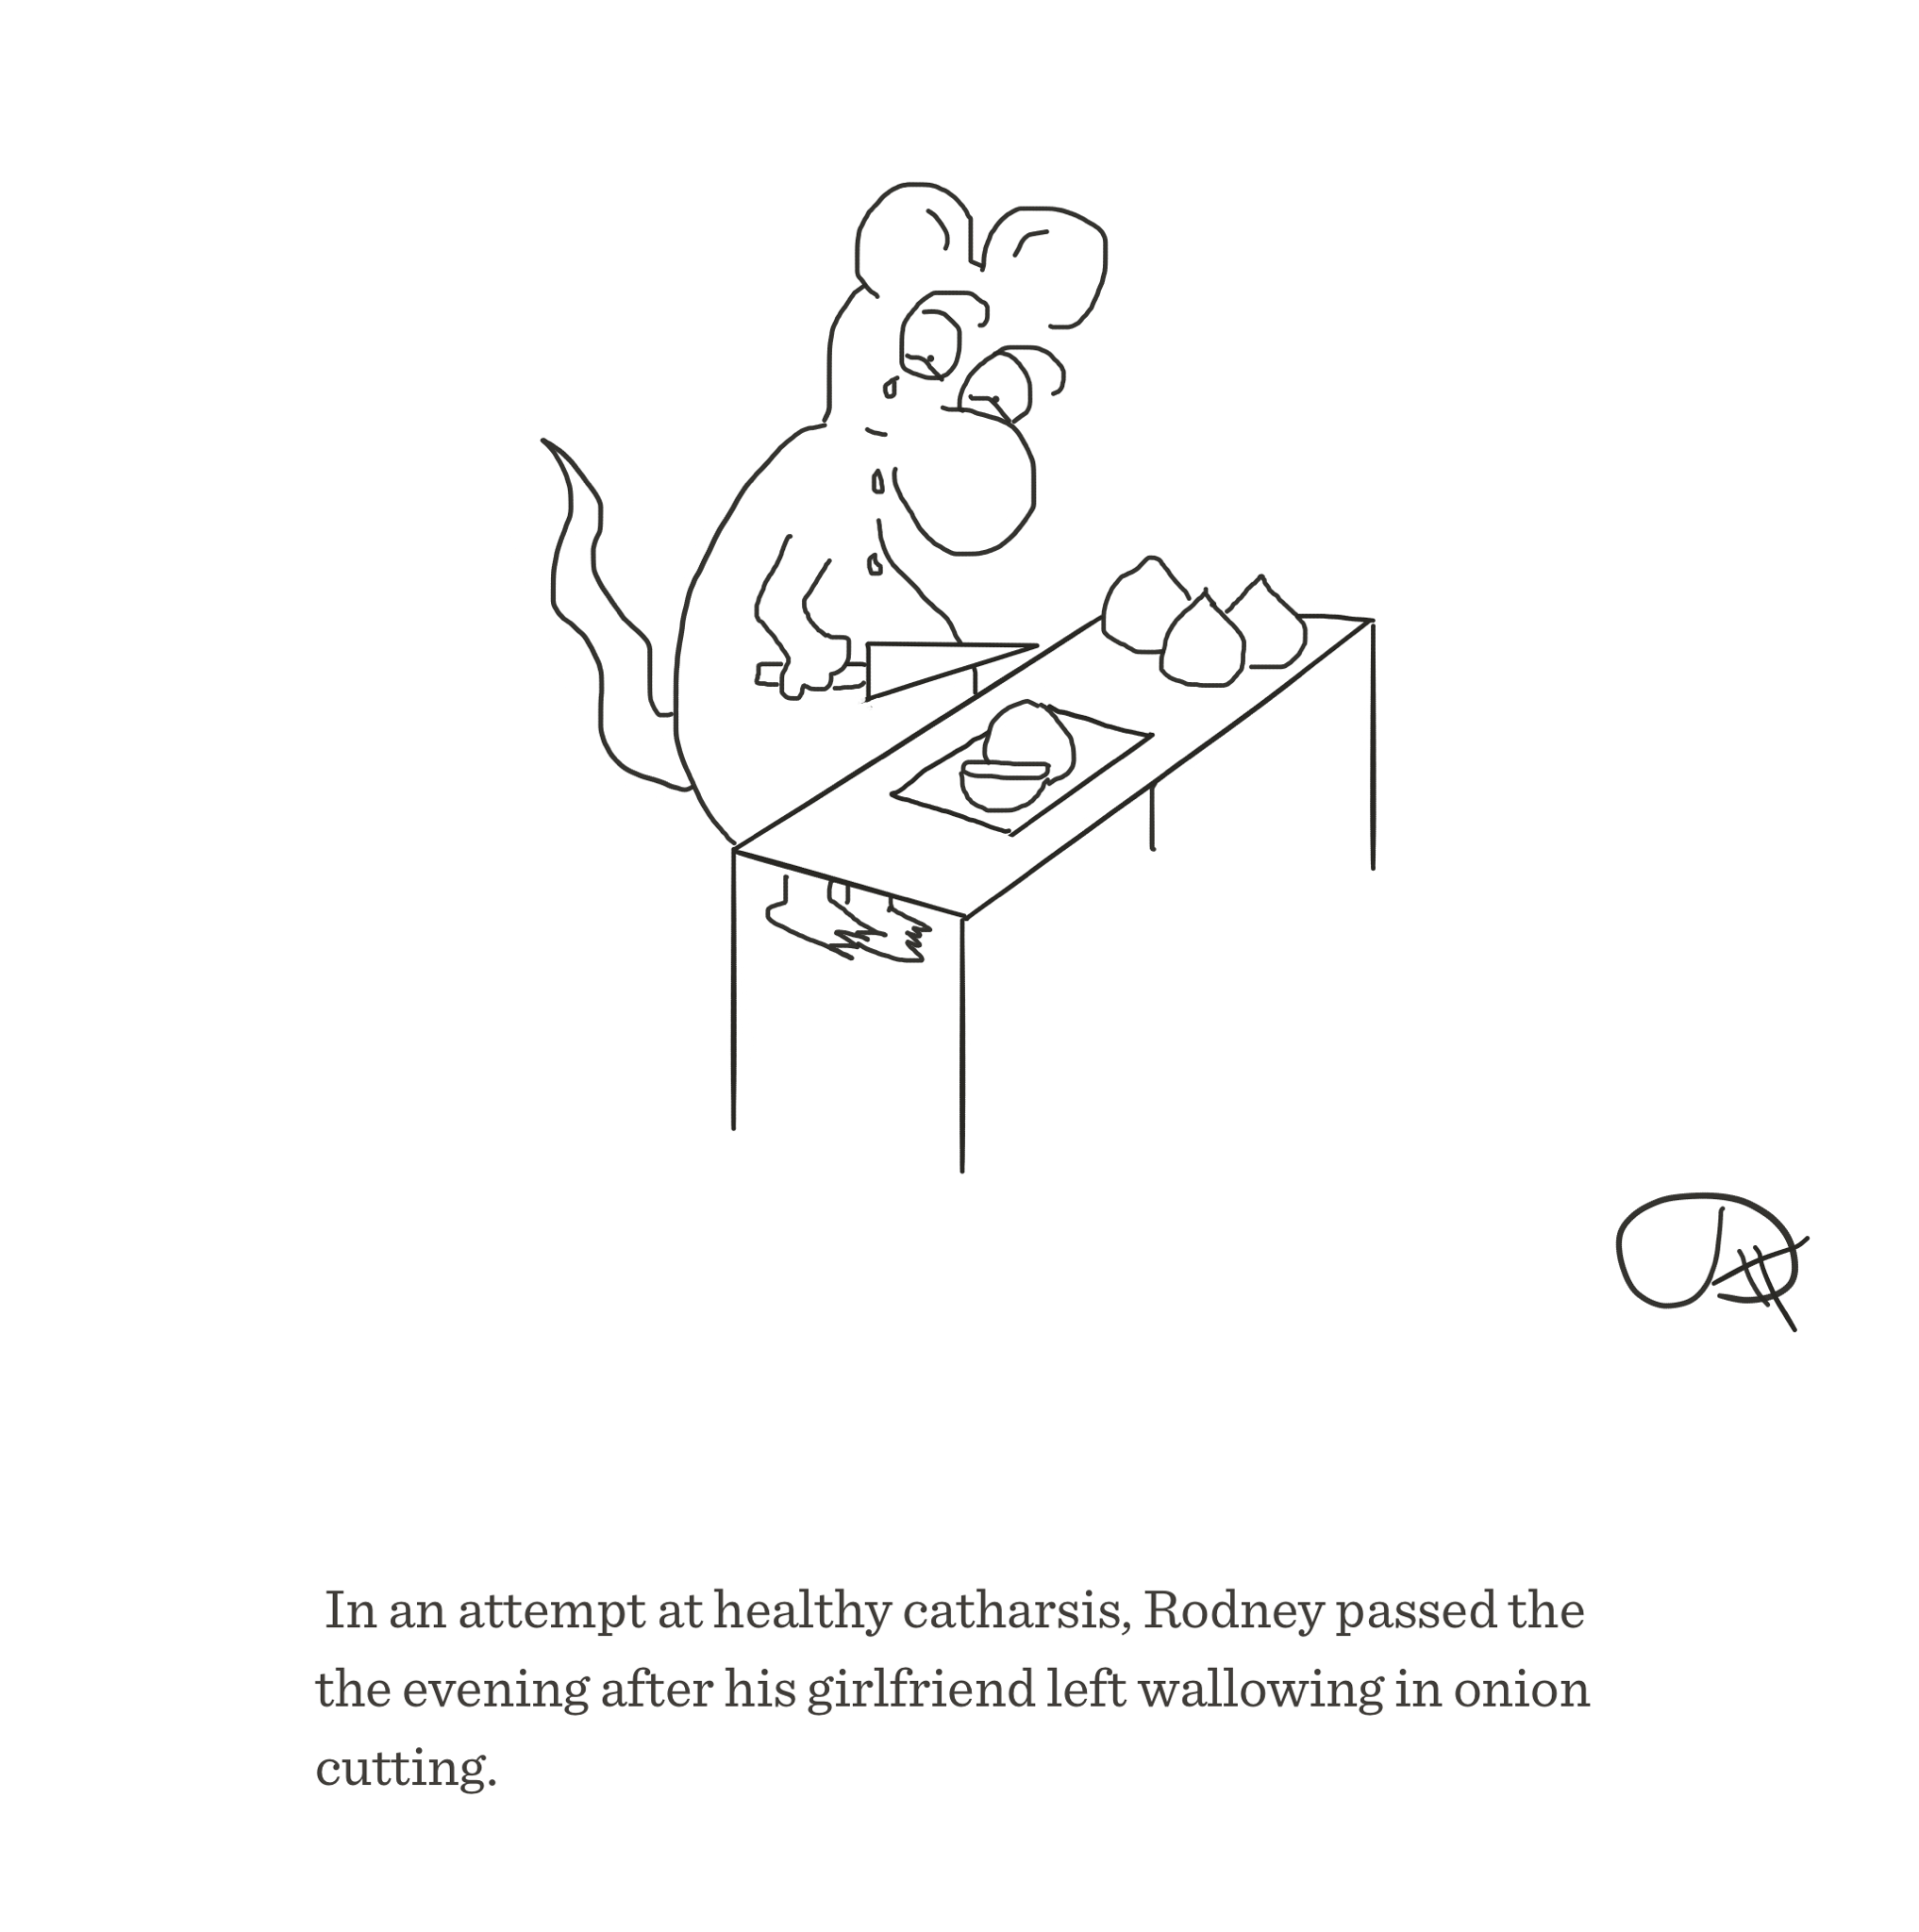 Onion cutting wallowing, The Happy Rat, Sarah Hunt